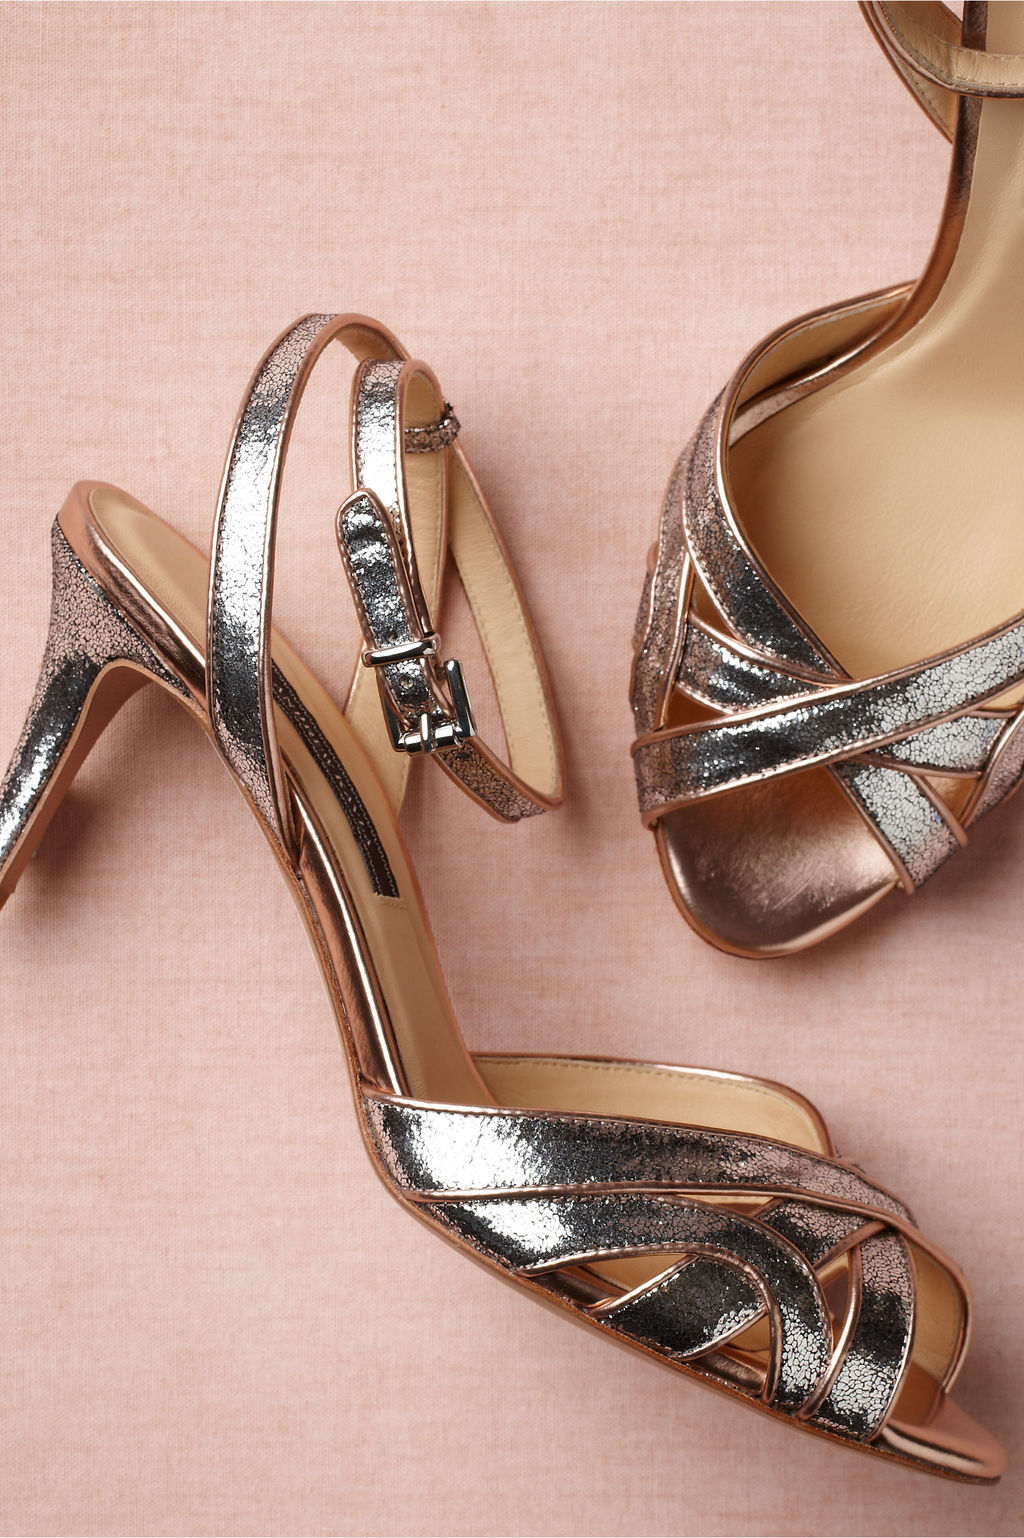 Rose-gold-and-silver-bhldn-wedding-shoes.full